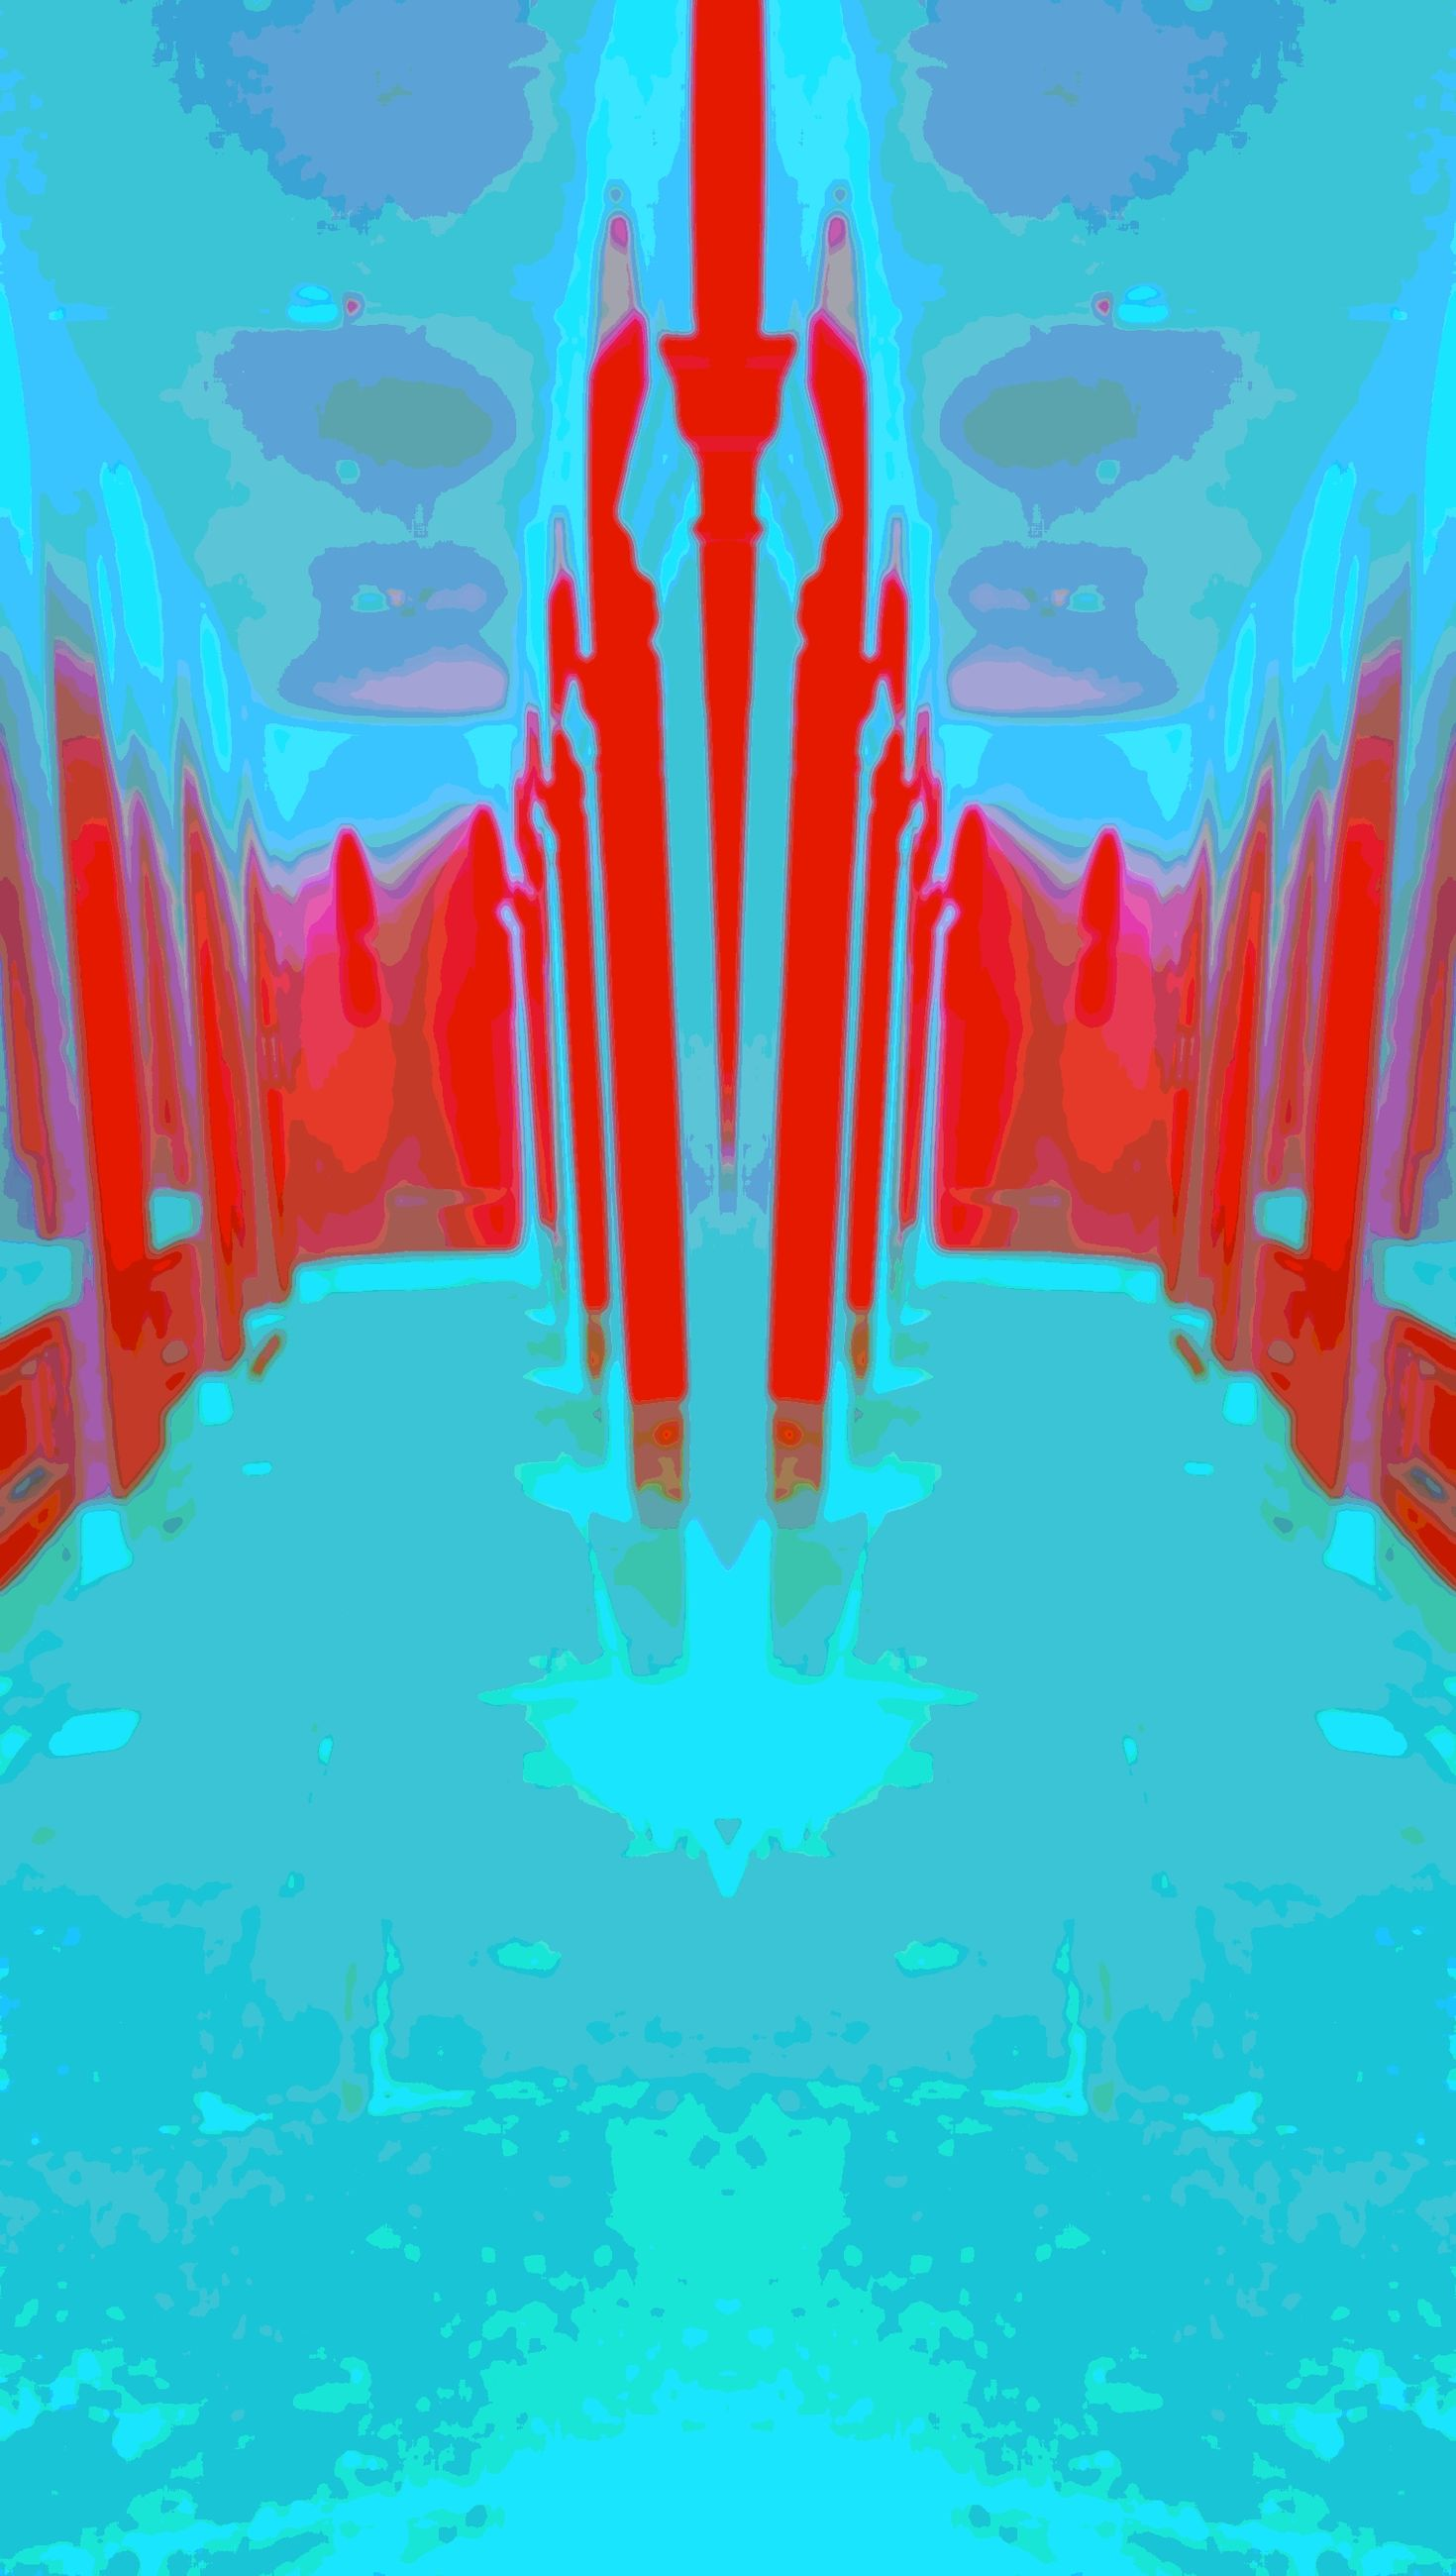 blue, swimming pool, water, built structure, architecture, red, wall - building feature, turquoise colored, sunlight, indoors, pattern, multi colored, no people, reflection, day, close-up, low angle view, building exterior, steps